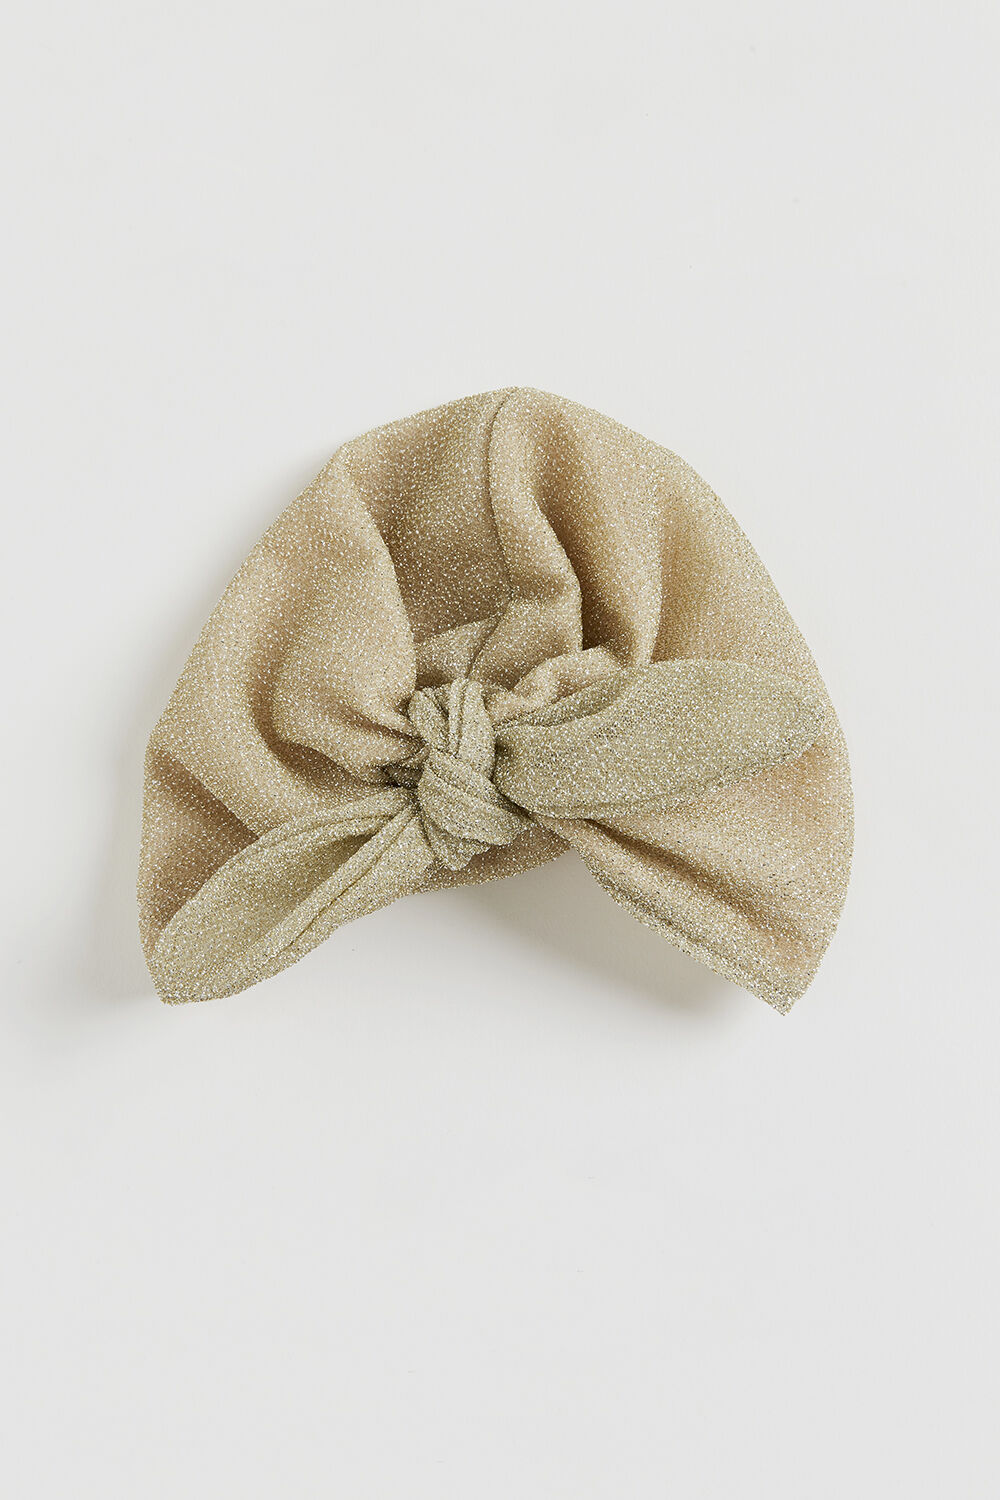 GOLD LUREX BOW WRAP in colour GOLD EARTH